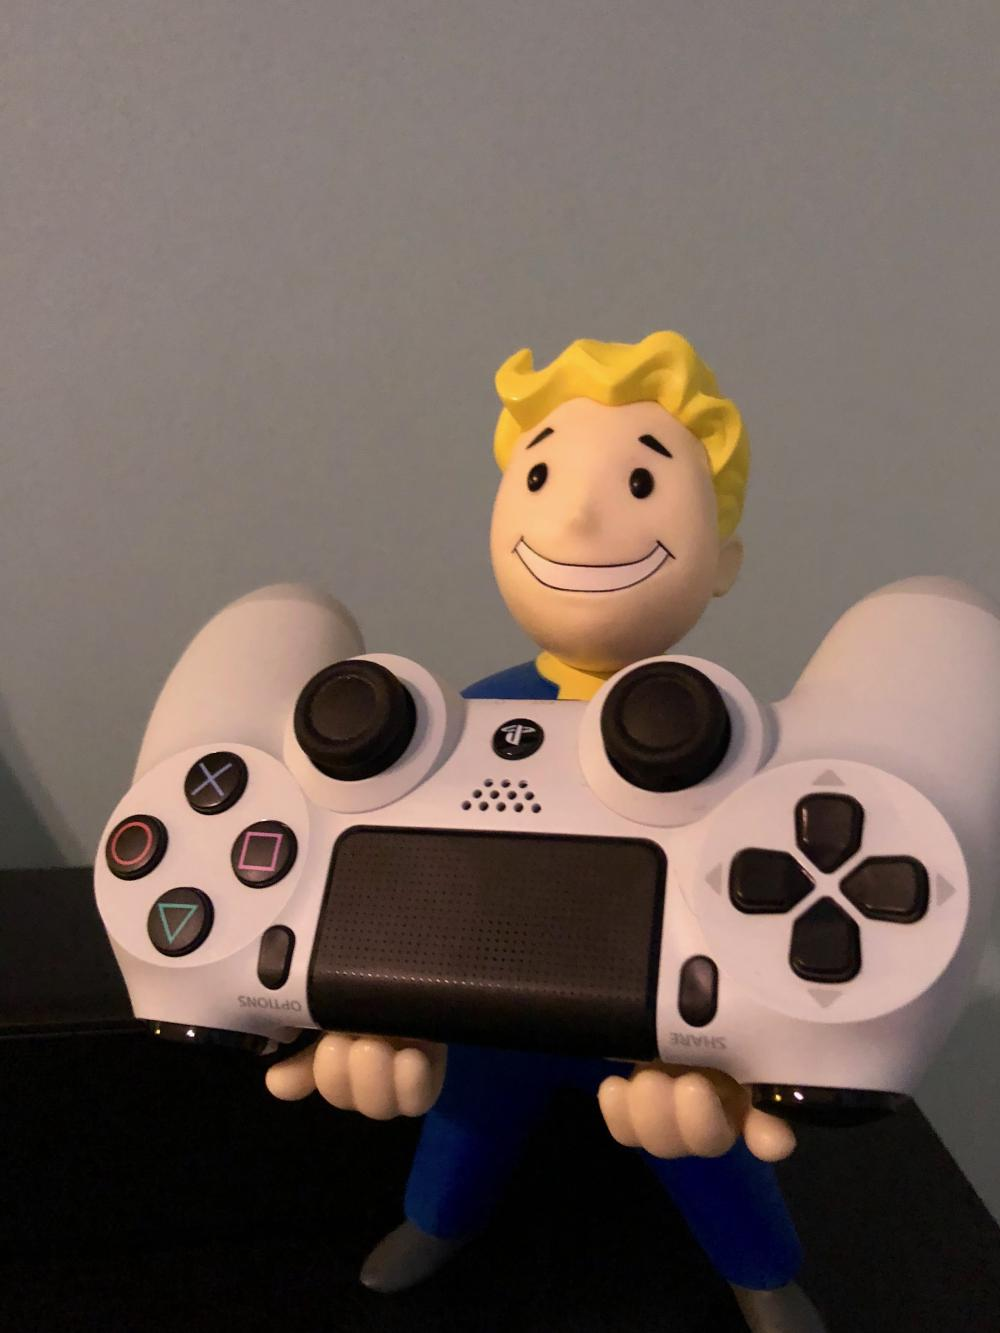 Vault Boy standing strong everyday